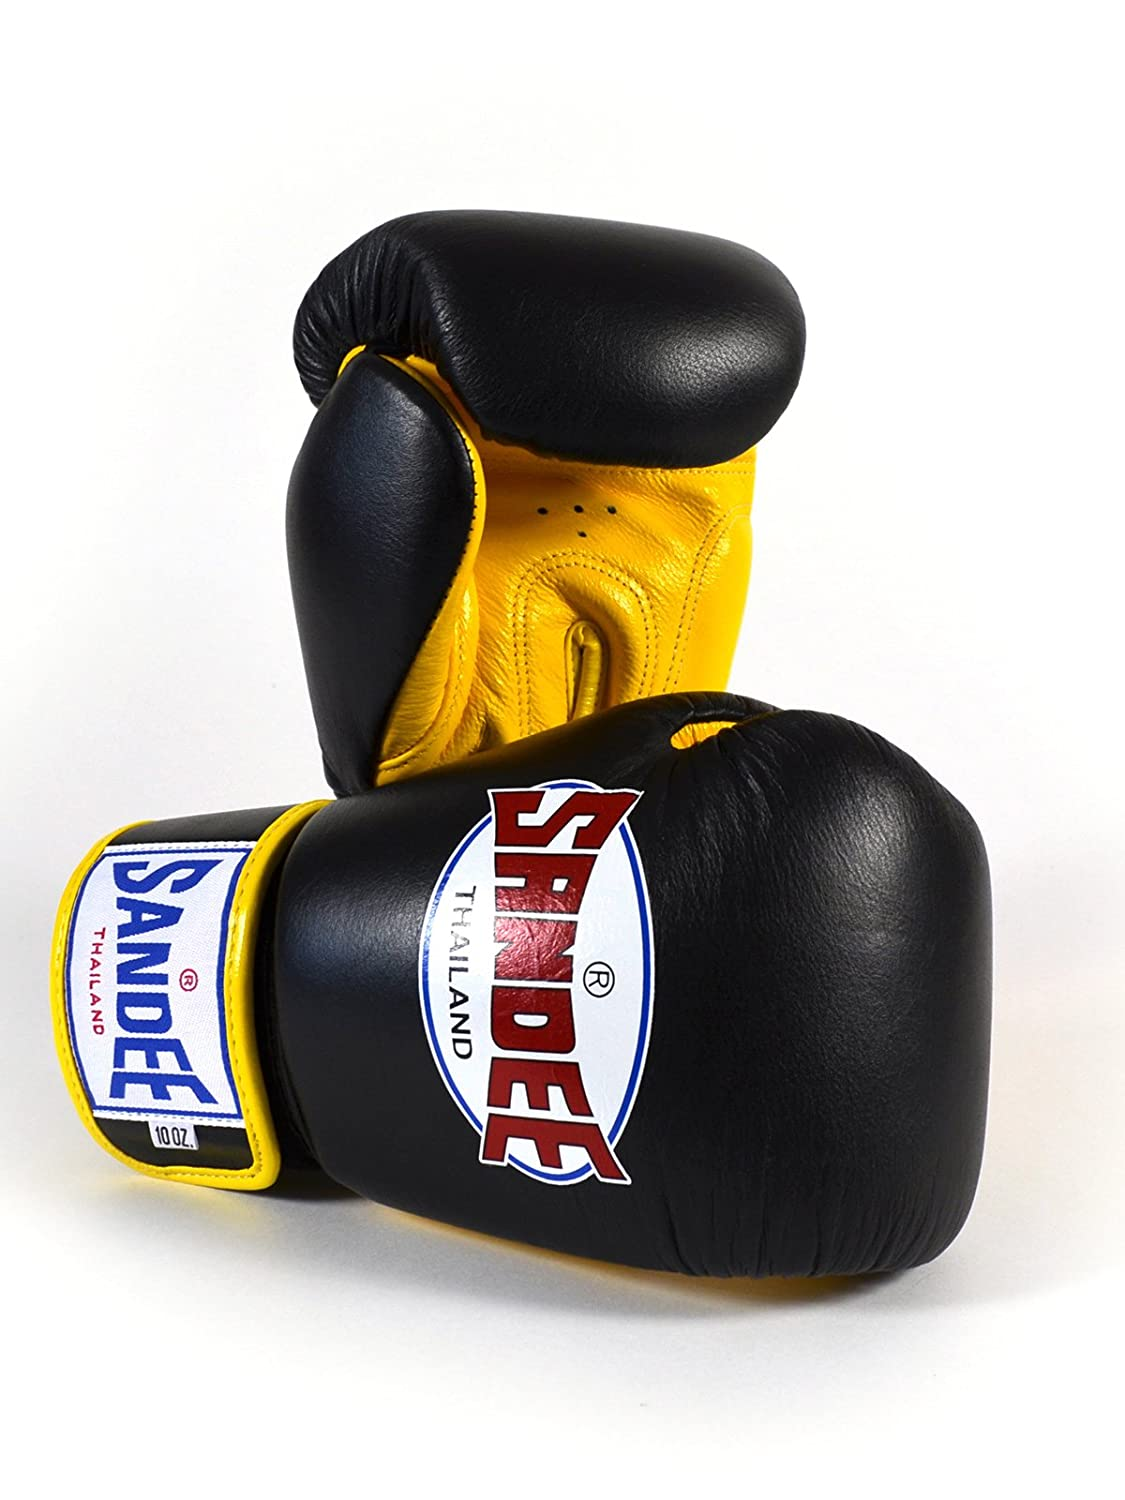 Sandee Authentic Velcro Leather Boxing Glove